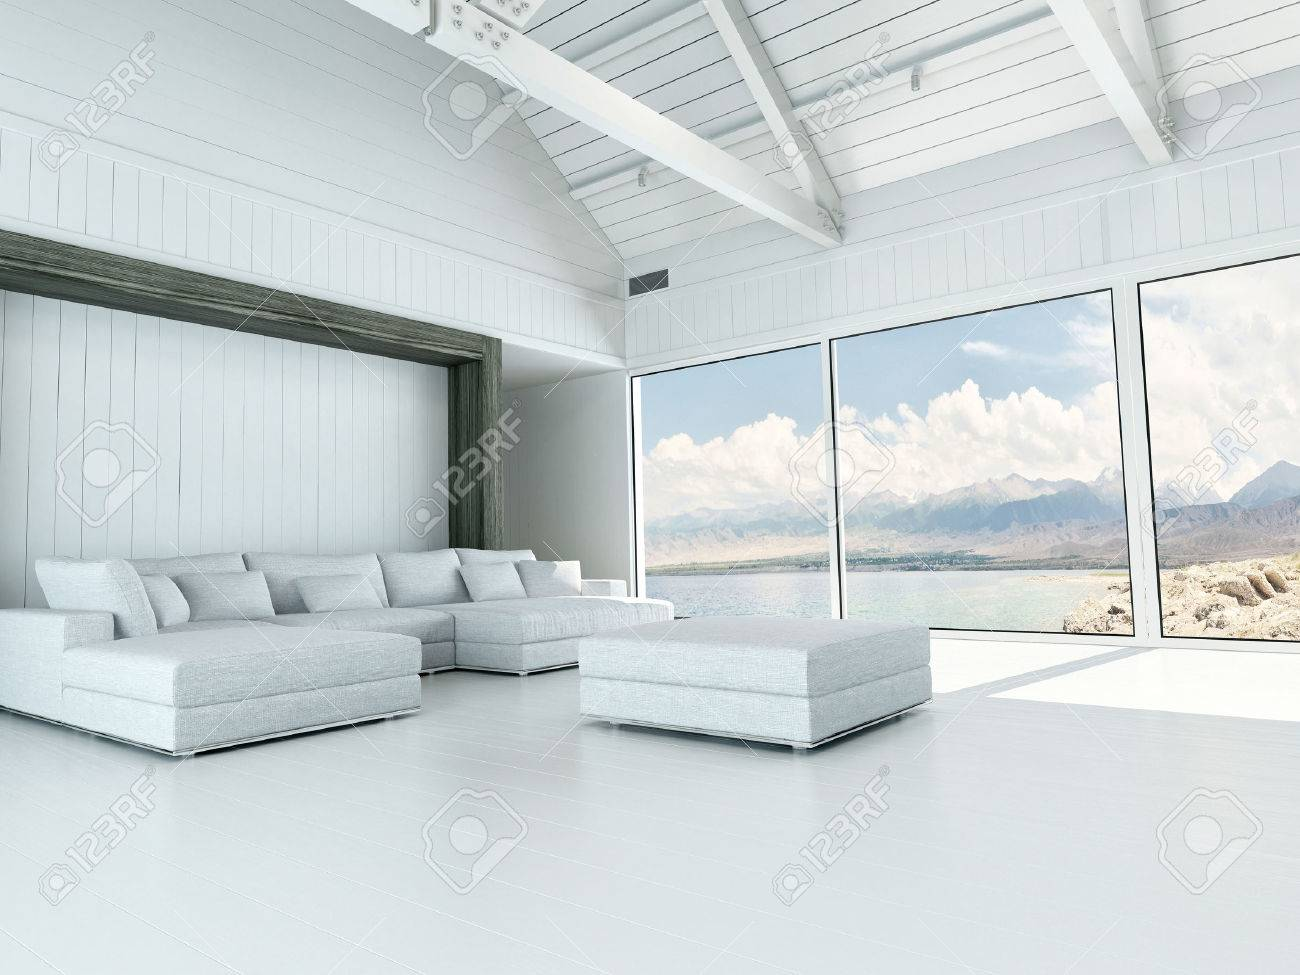 Modern white living room interior with large view windows overlooking..